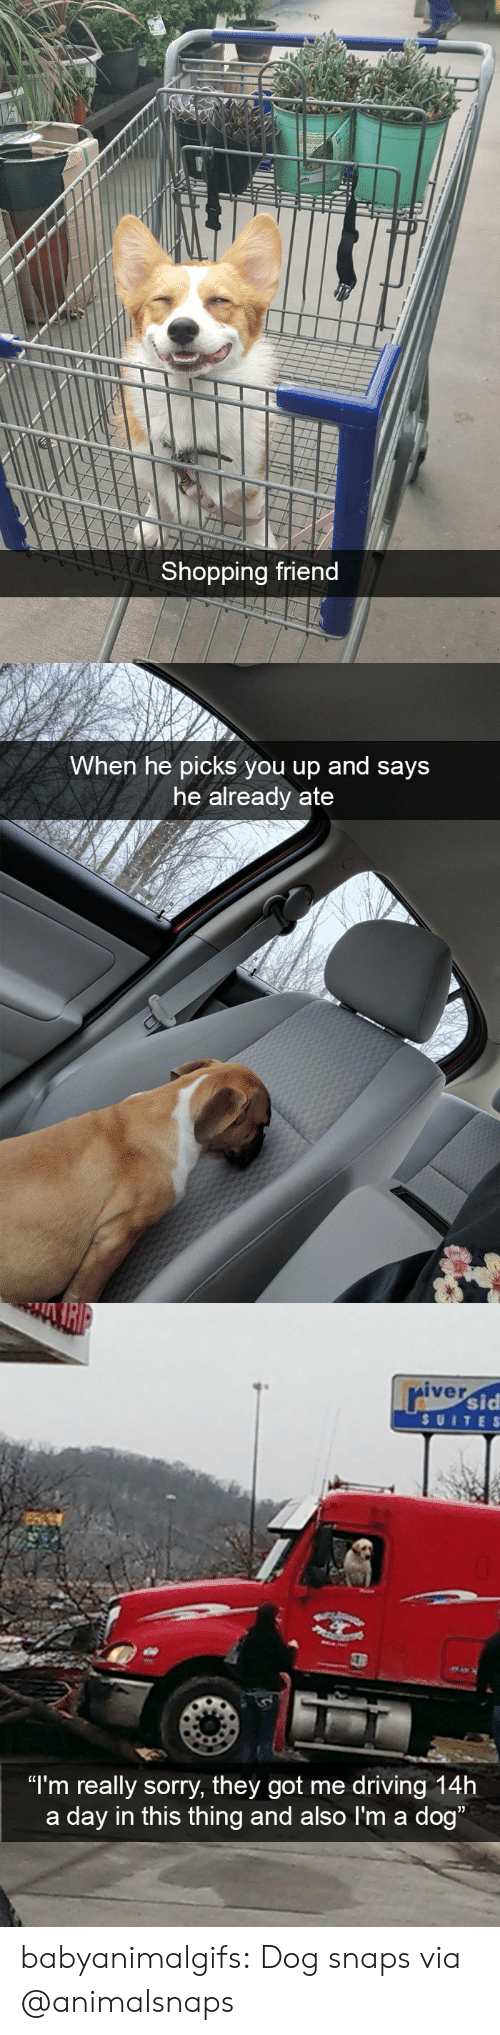 "suite: Shopping friend   When he picks you up and says  he already ate   iver  sid  SUITE S  ""I'm really sorry, they got me driving 14h  a day in this thing and also I'm a dog babyanimalgifs: Dog snaps via @animalsnaps"